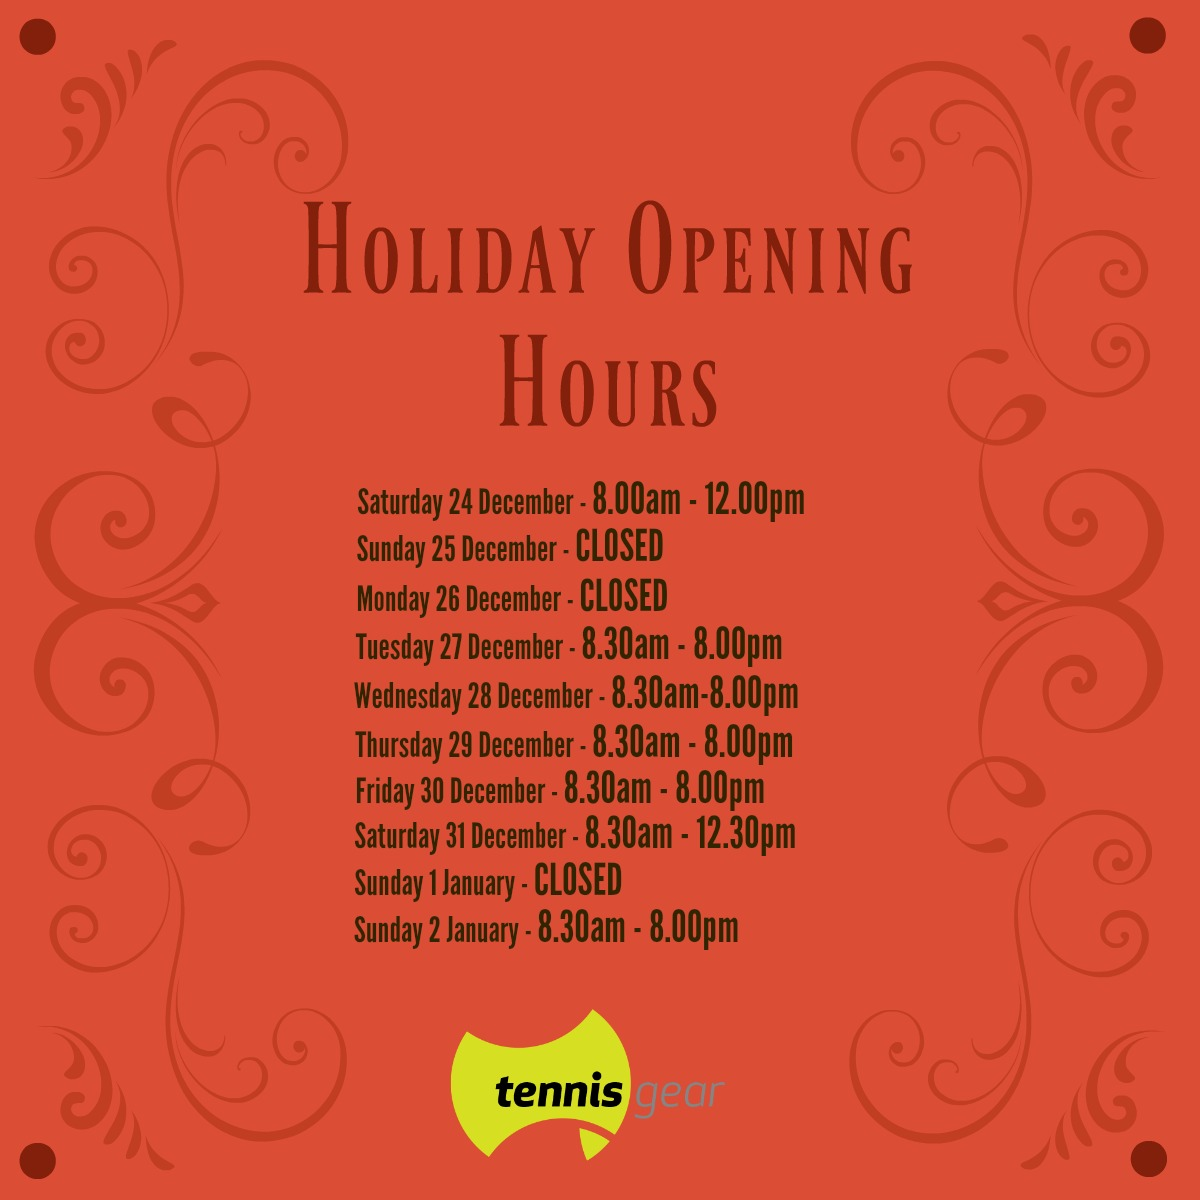 Emerson Holiday Opening Hours 2016